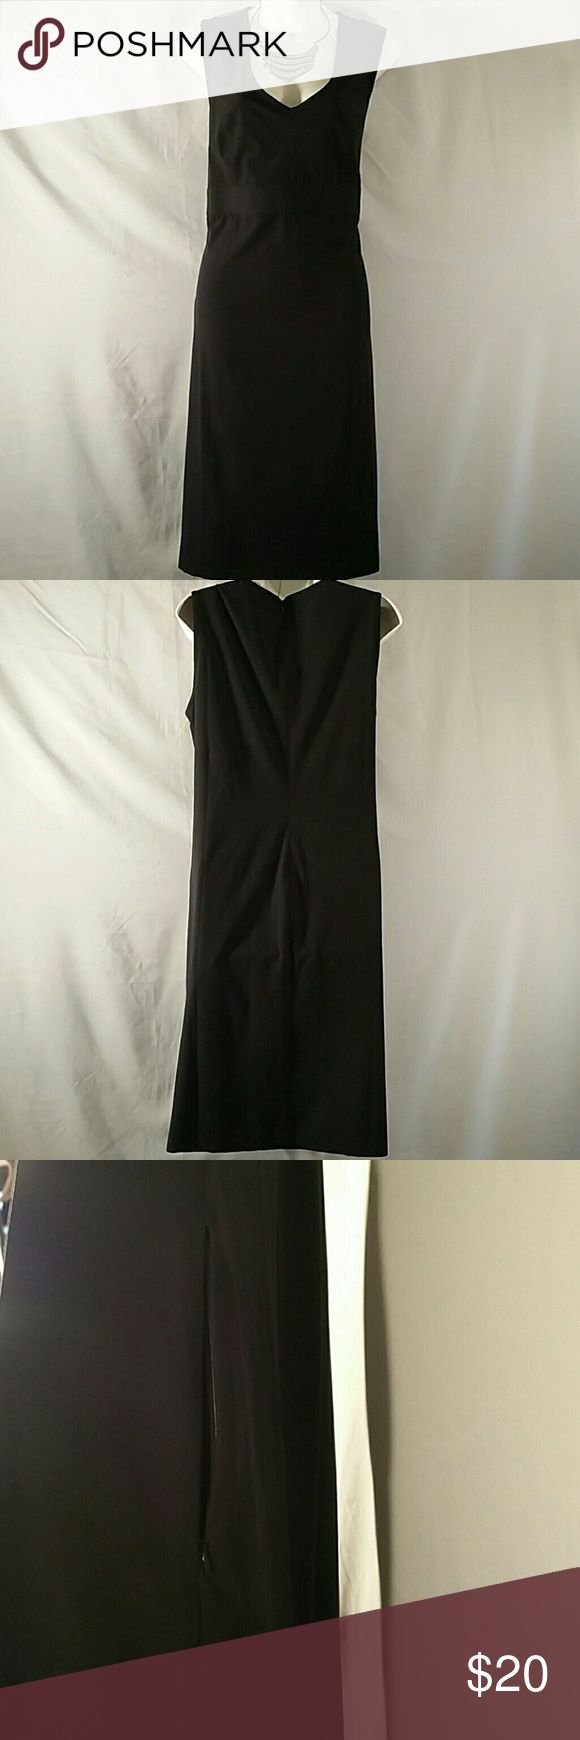 NWOT * Sheath Dress * Plus Size Beautiful * Black * Sleeveless * Knee Length * Side Zipper Pockets * Zipper down the Back * Polyester Spandex * Bundle and Save * Travel Smith Dresses